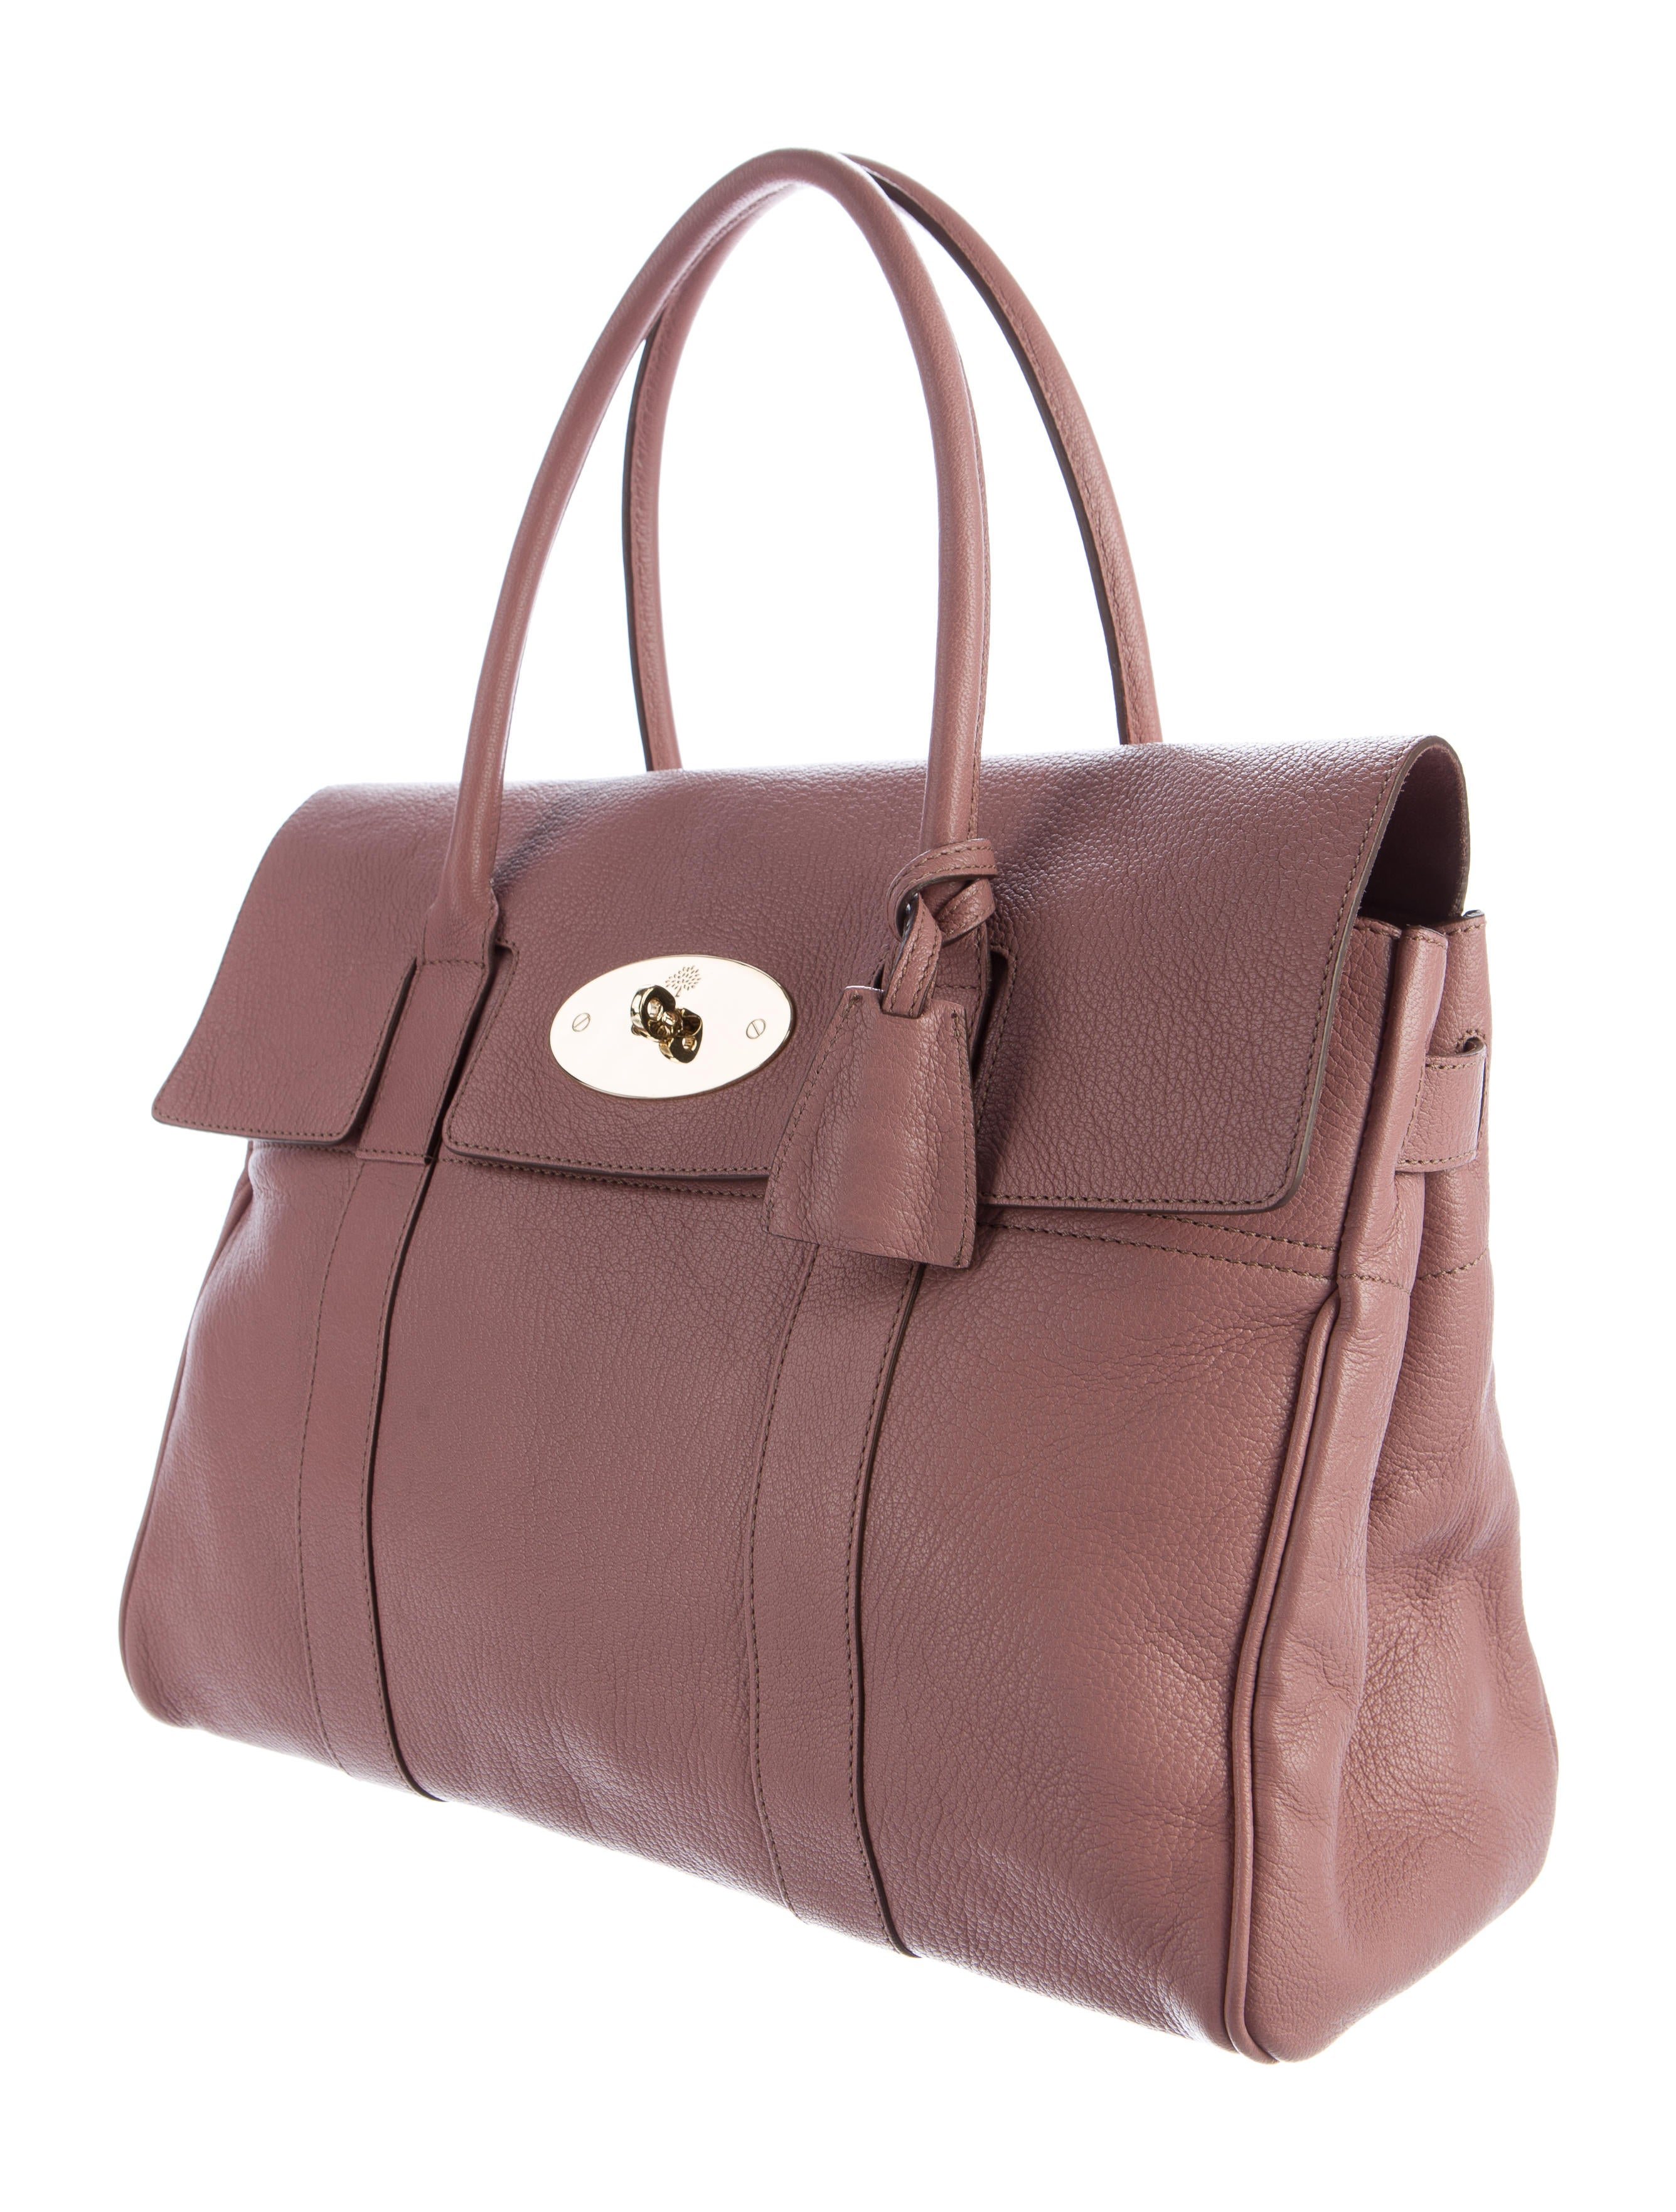 Mulberry leather bayswater bag handbags mul22456 the for The bayswater